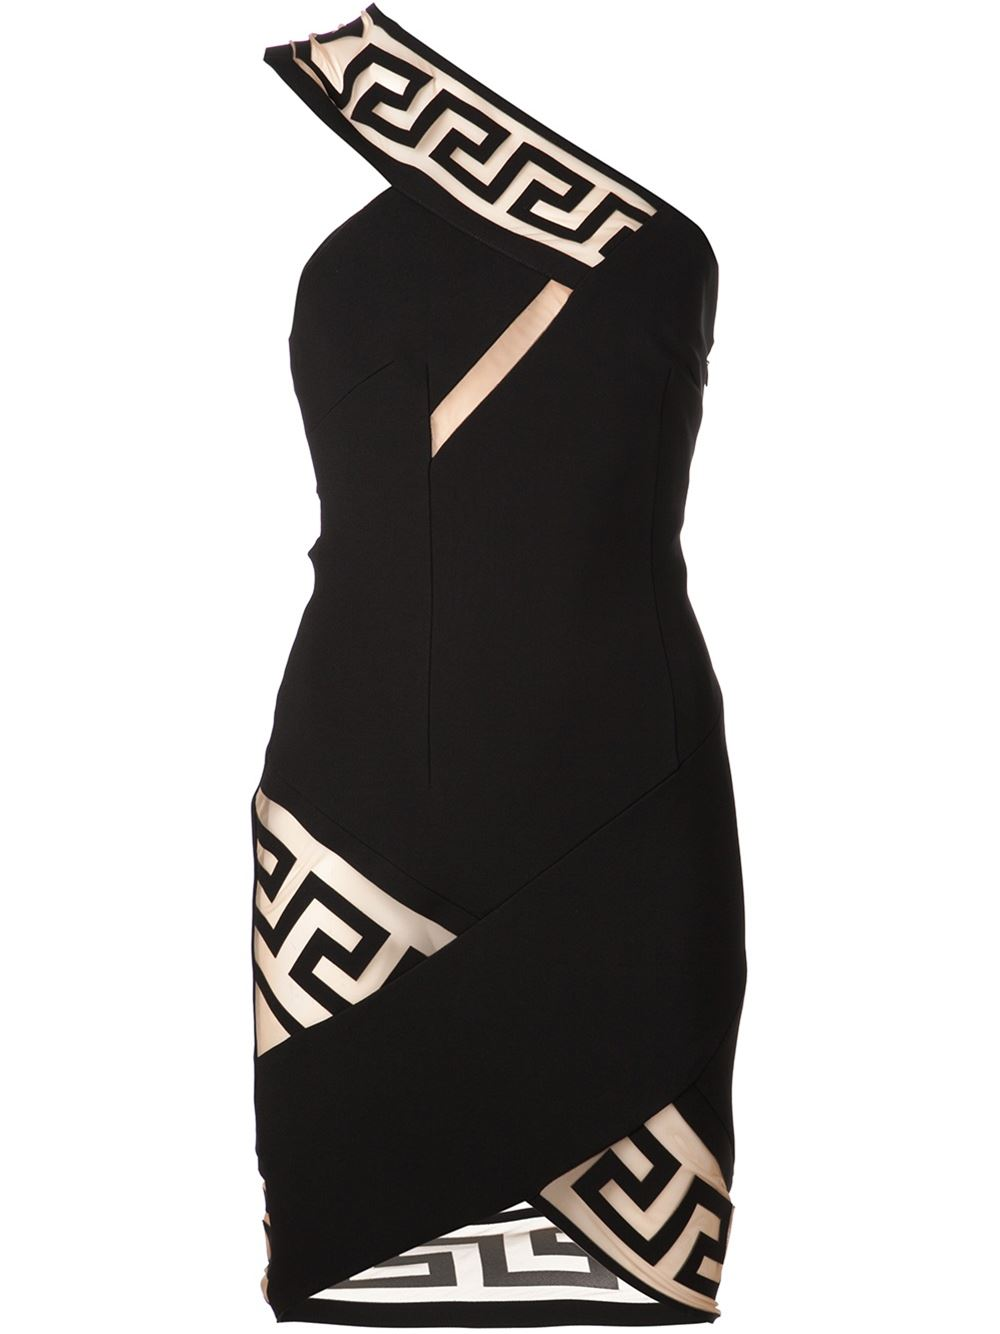 Anthony vaccarello x versus versace fitted dress